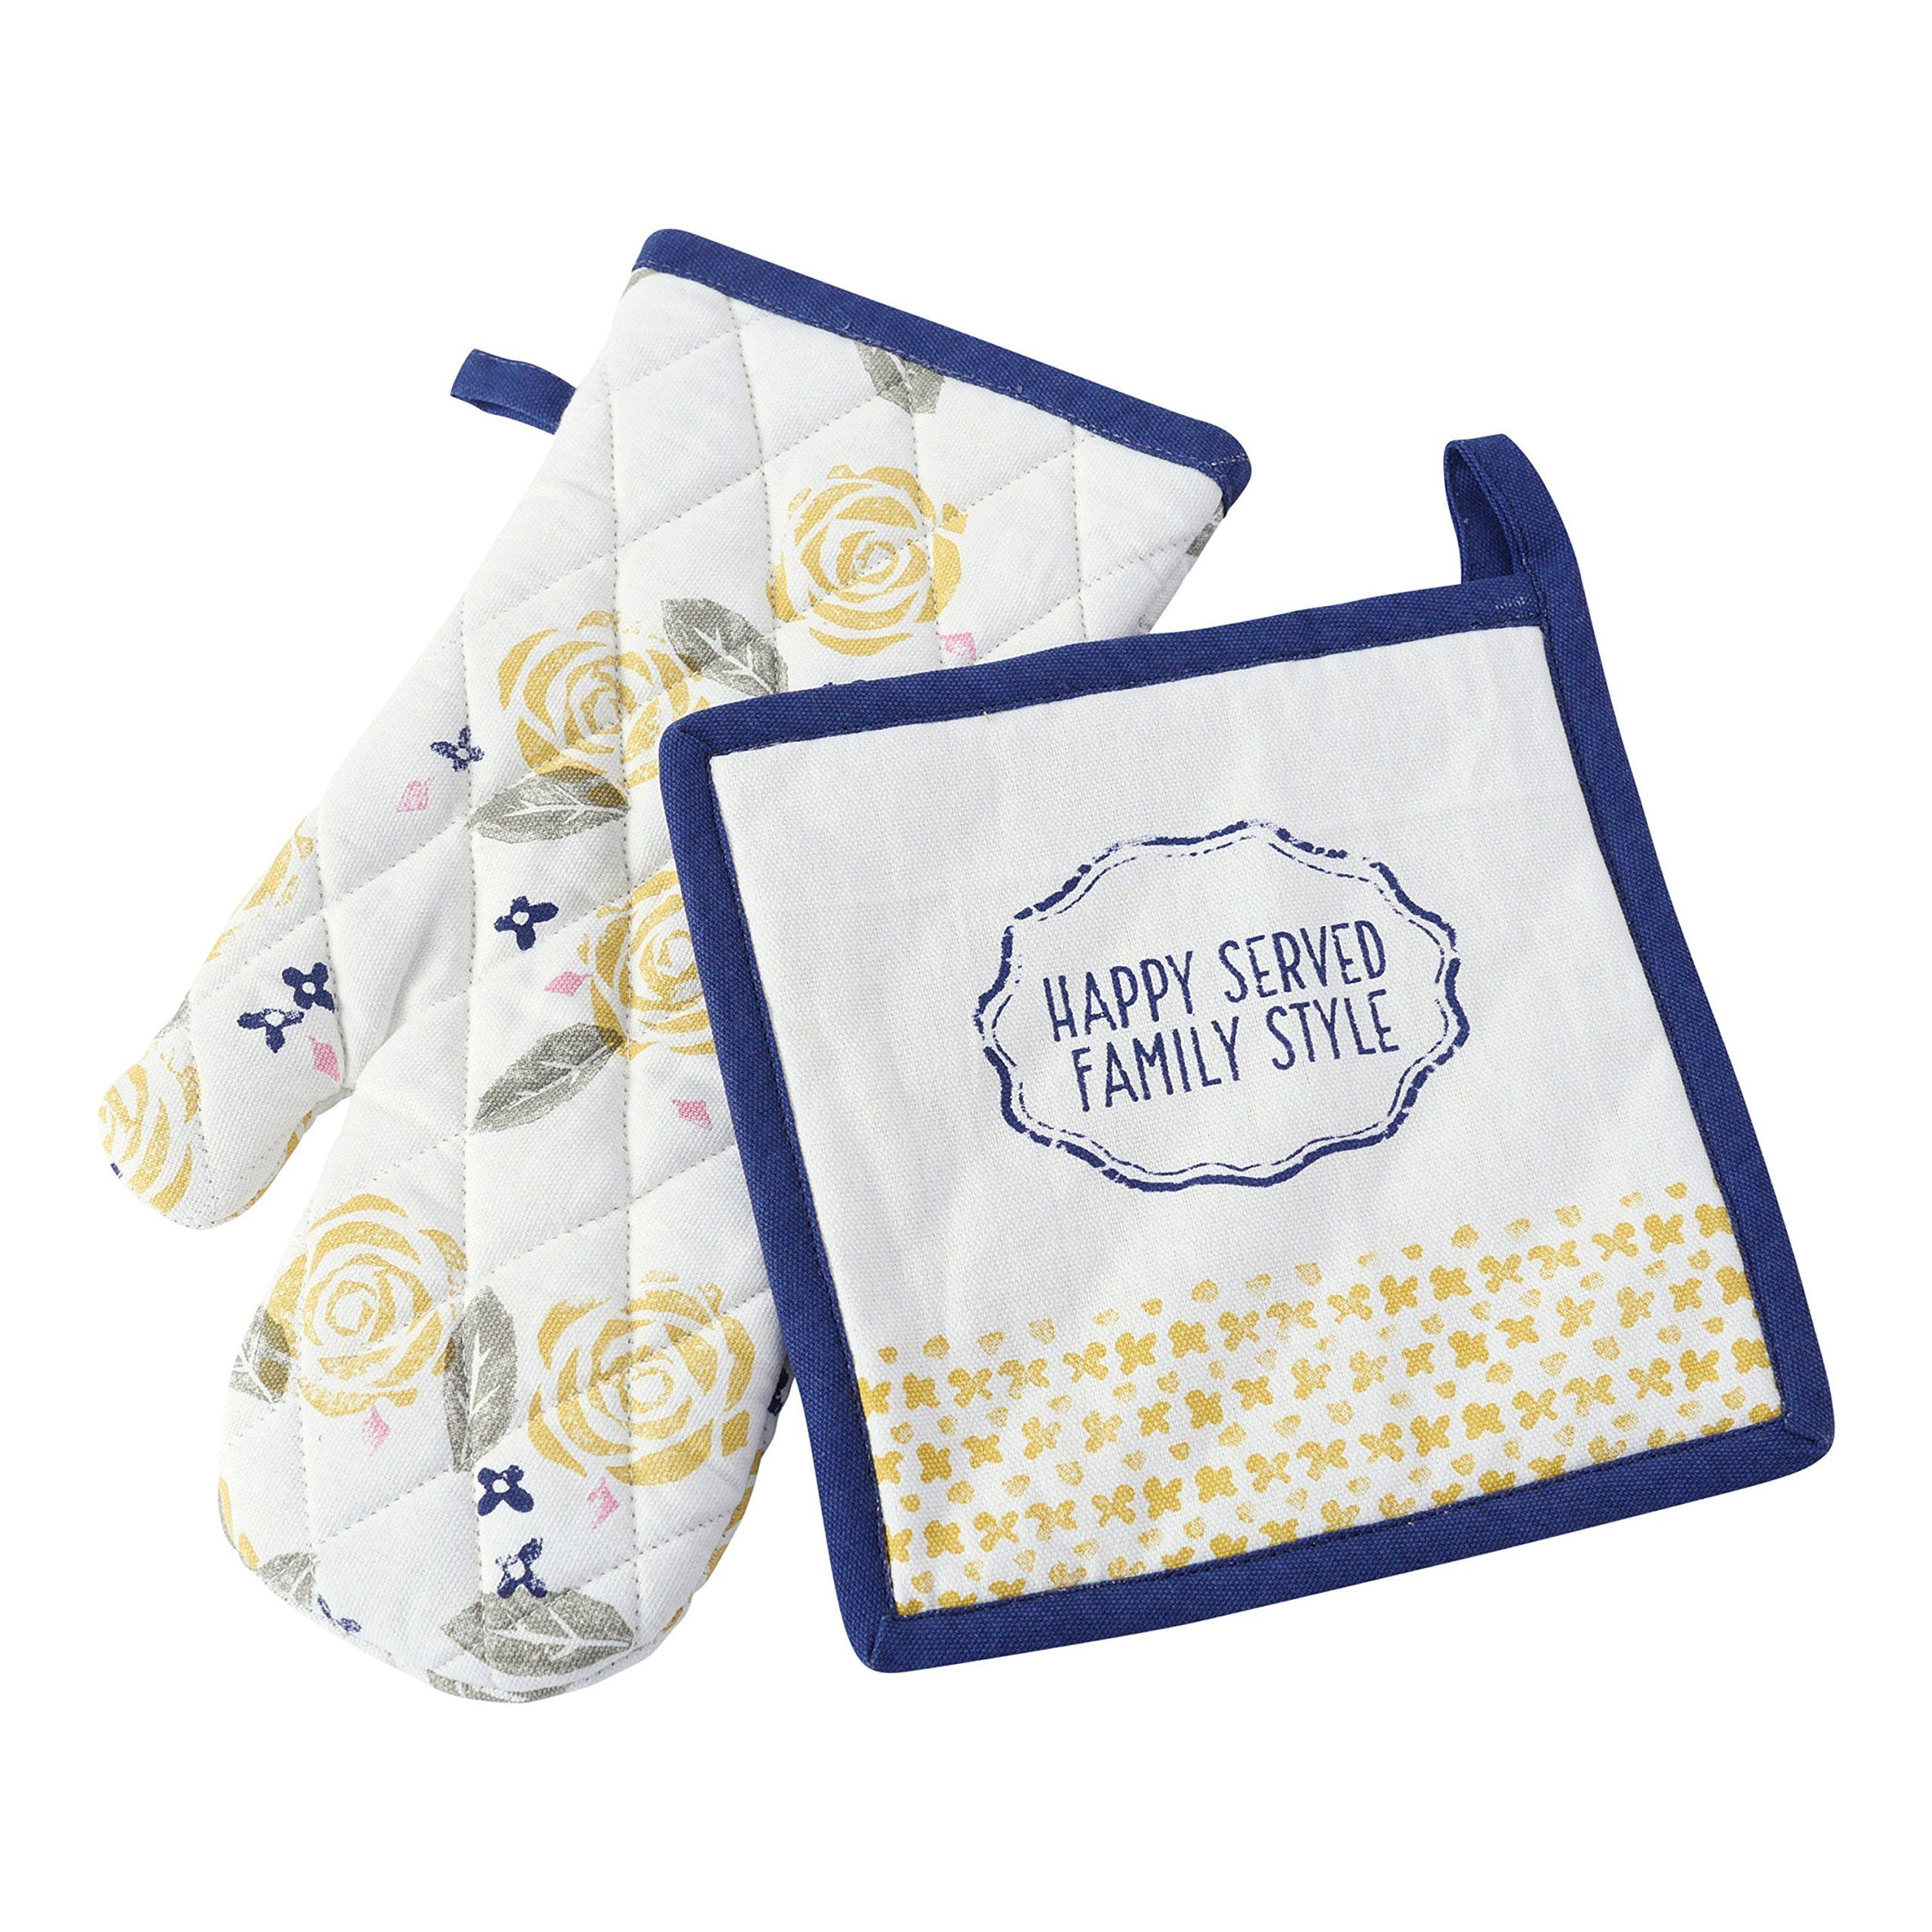 Hallmark Home Cotton Everyday Quilted Potholder and Oven Mitt Set, Family Style with Flowers